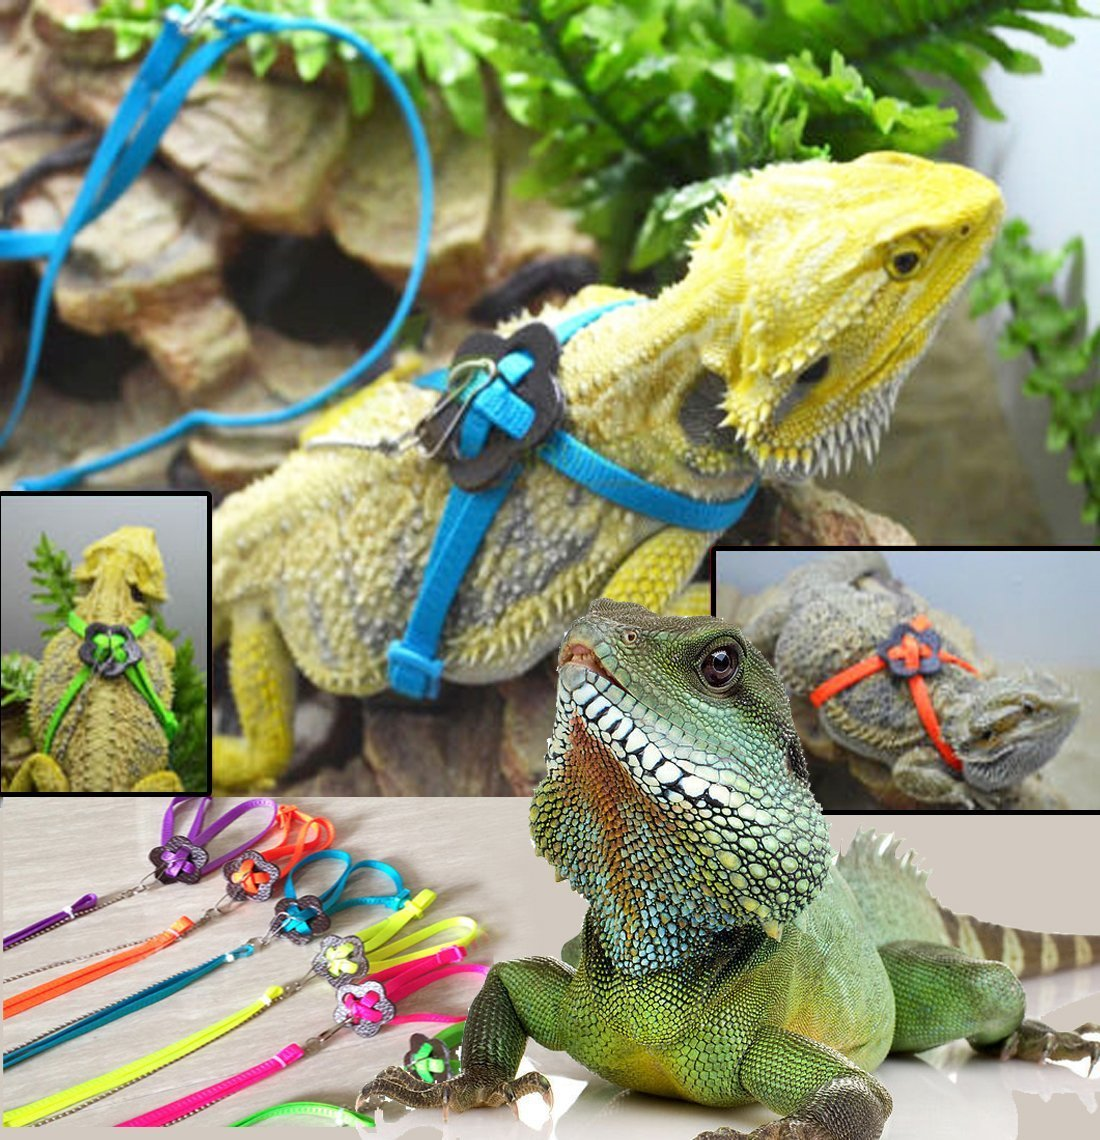 Zantec Generic Adjustable Reptile Lizard Harness Leash Adjustable Multicolor Light Soft Fashion (Green)